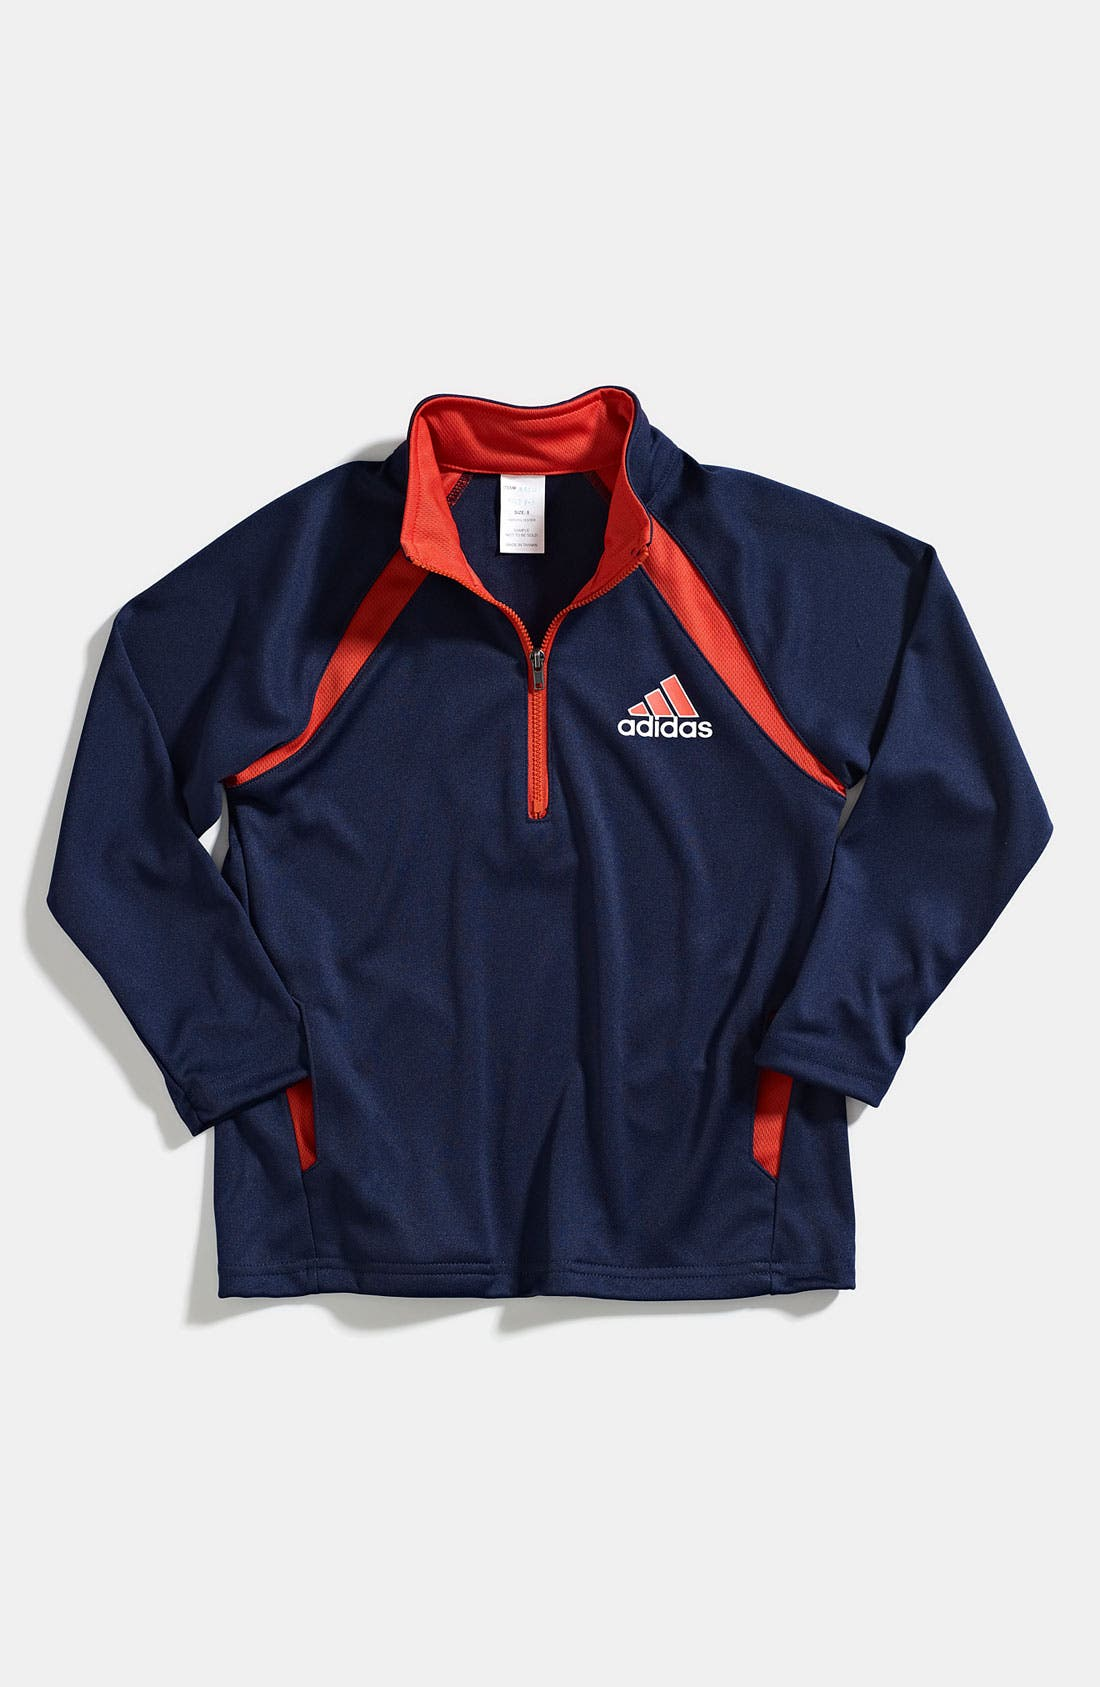 Main Image - adidas Tech Jacket (Little Boys)